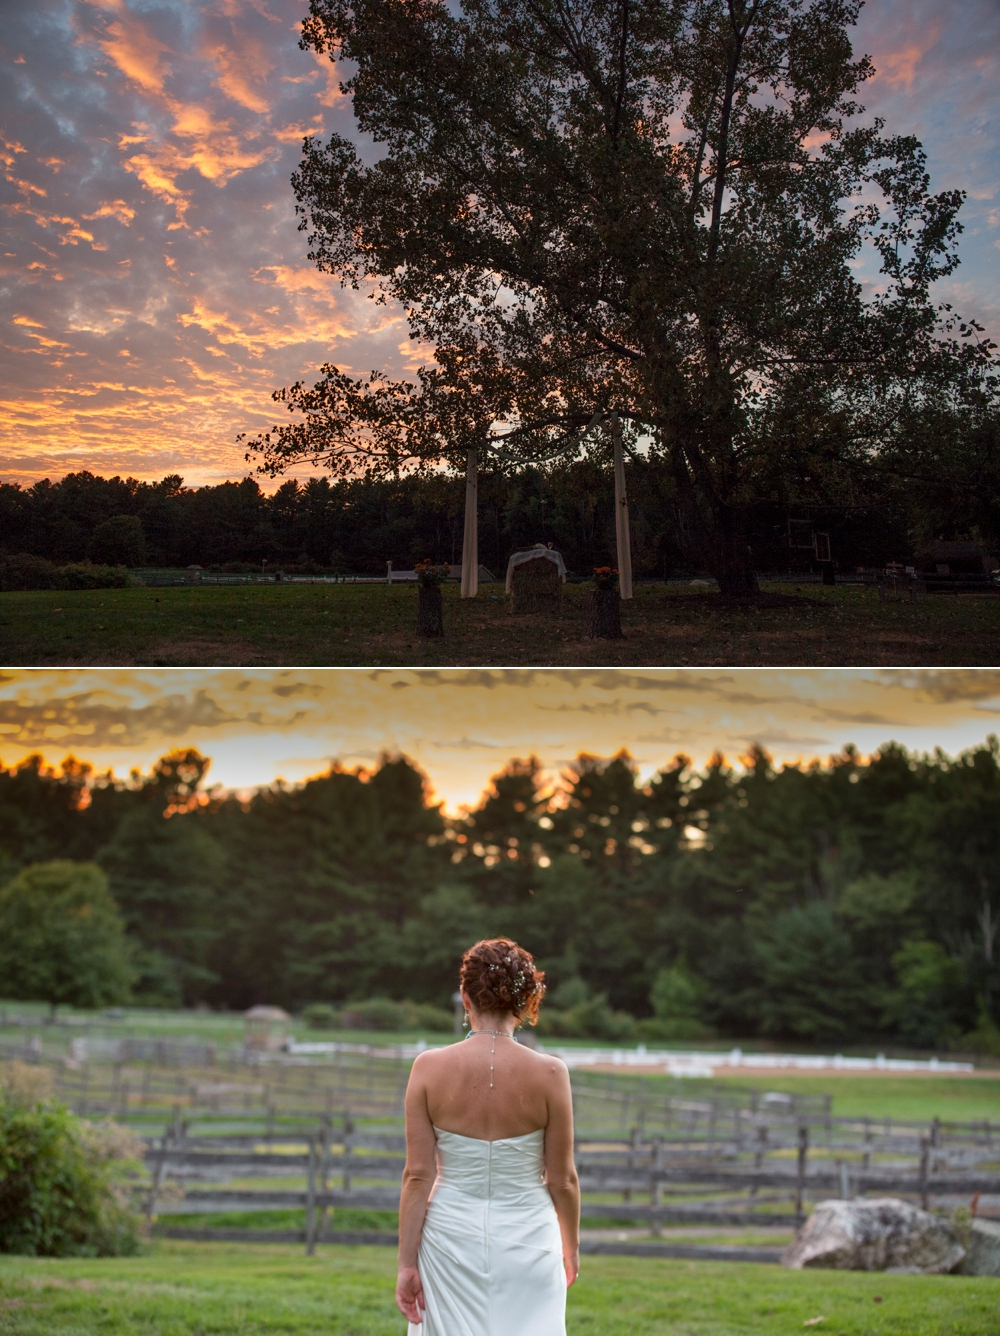 BearSpotFarm_Wedding_Nikki&Alex_0013.jpg